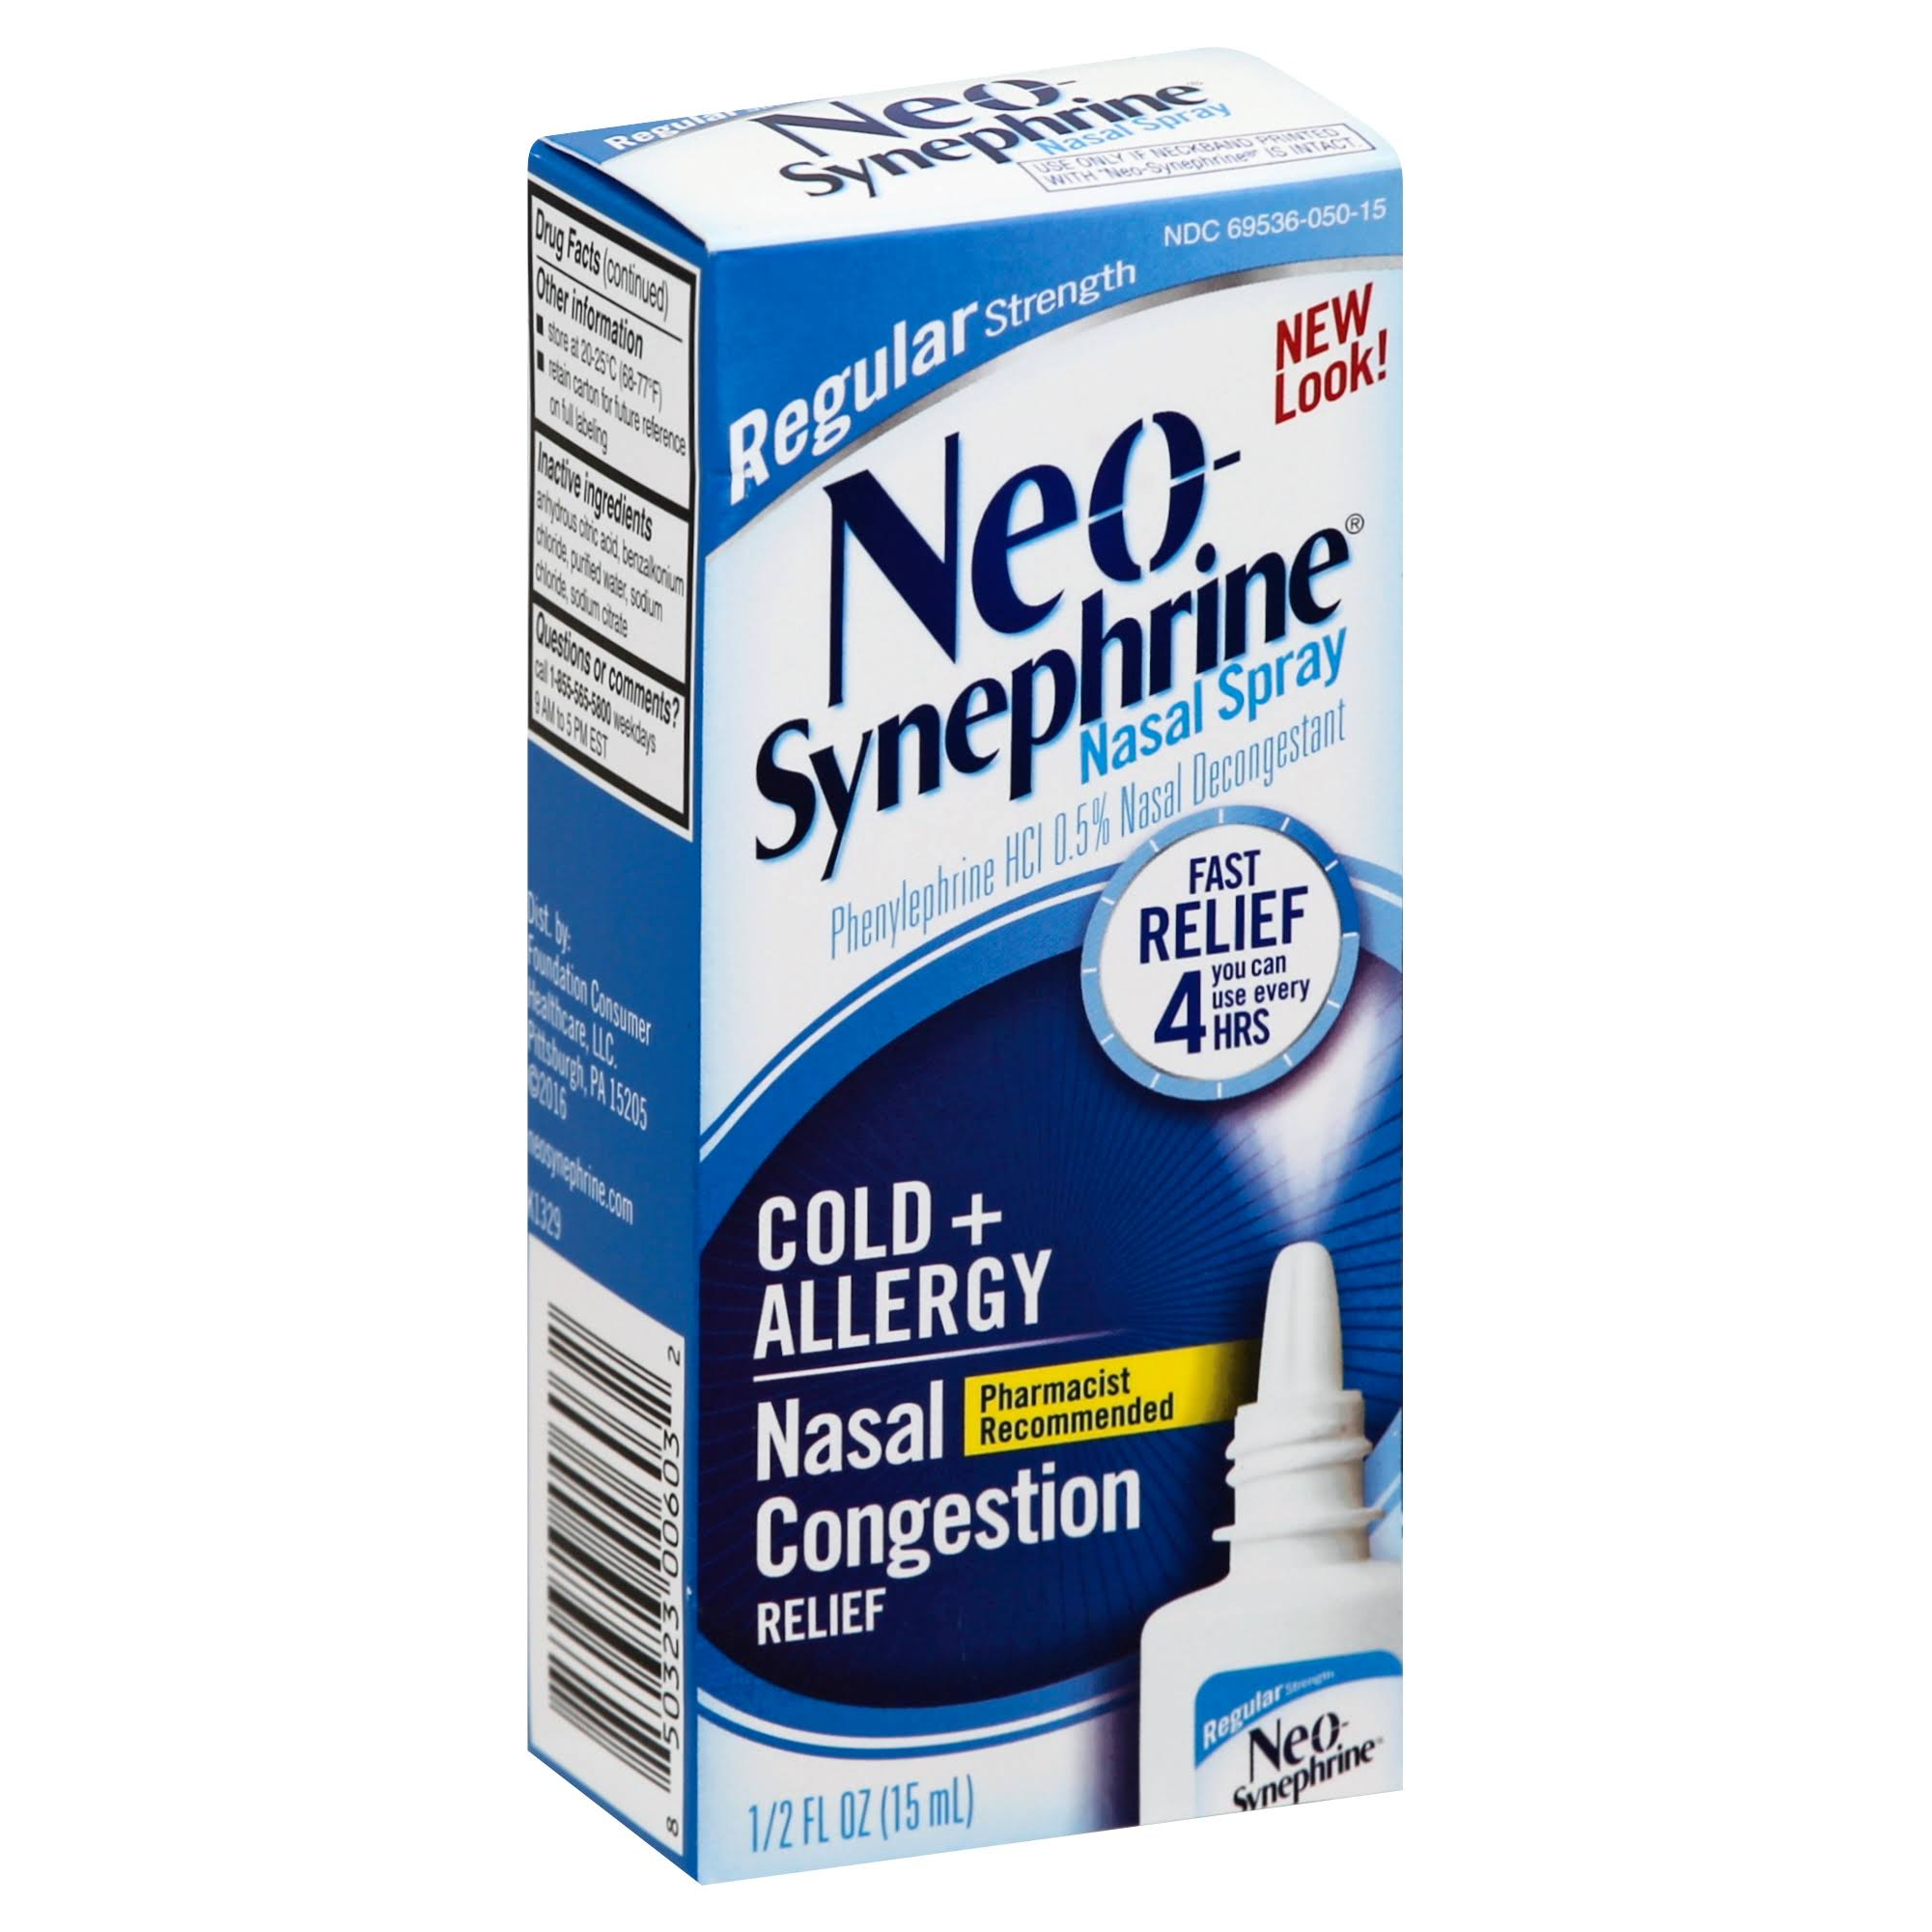 Neo-Synephrine Regular Strength Nasal Decongestant Spray - 0.5oz